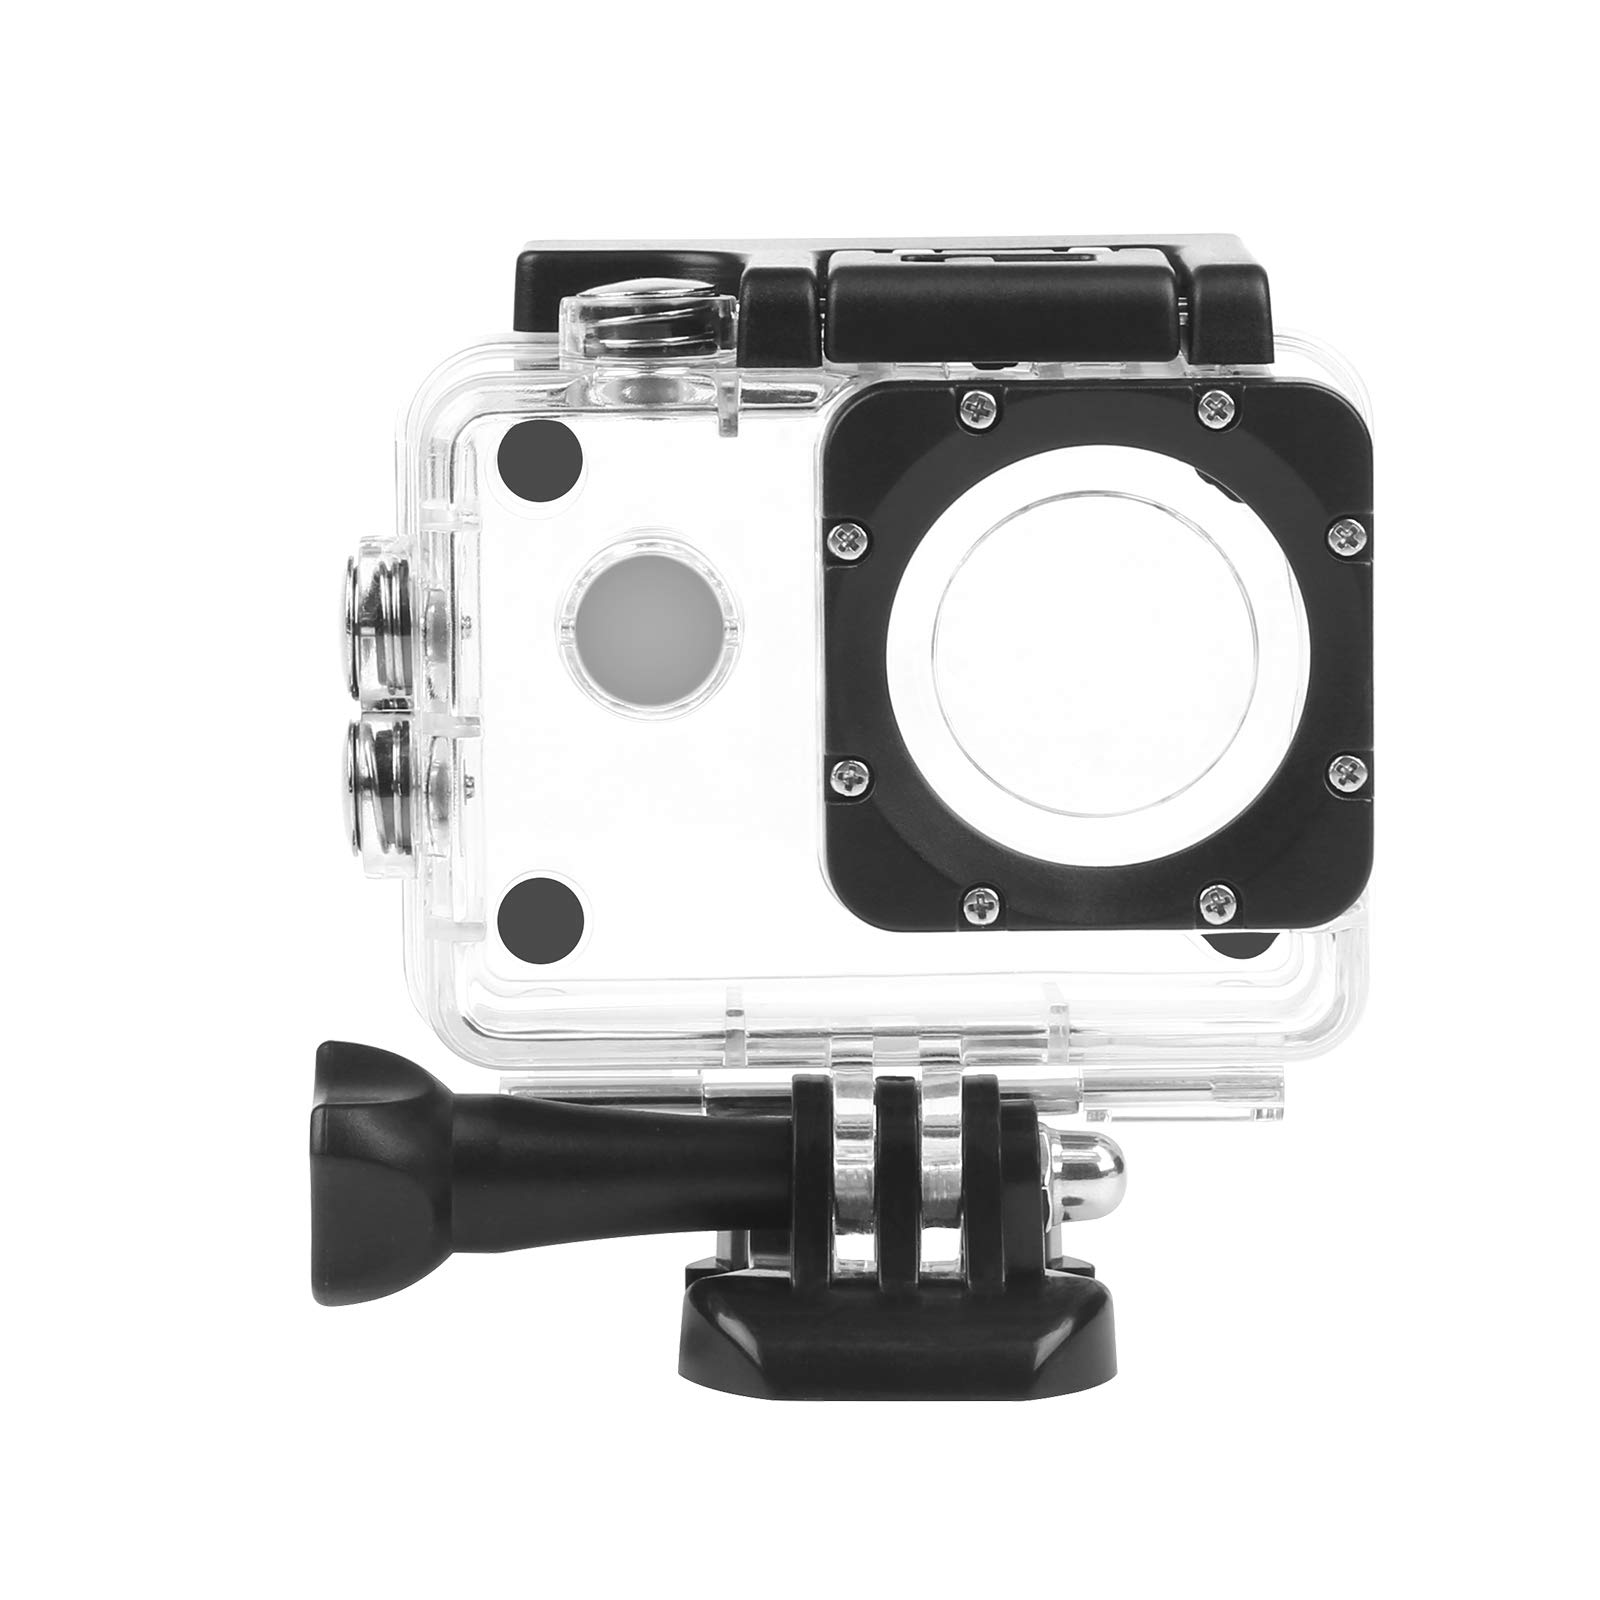 SHOOT 30m Waterproof Underwater Housing Case Shell Frame Cover for AKASO EK7000 EK5000 SJ4000 SJ4000 WIFI SJ4000 Plus SJ7000 DBPOWER EX5000 FITFORT Lightdow Campark WIMIUS Action Camera Accessories